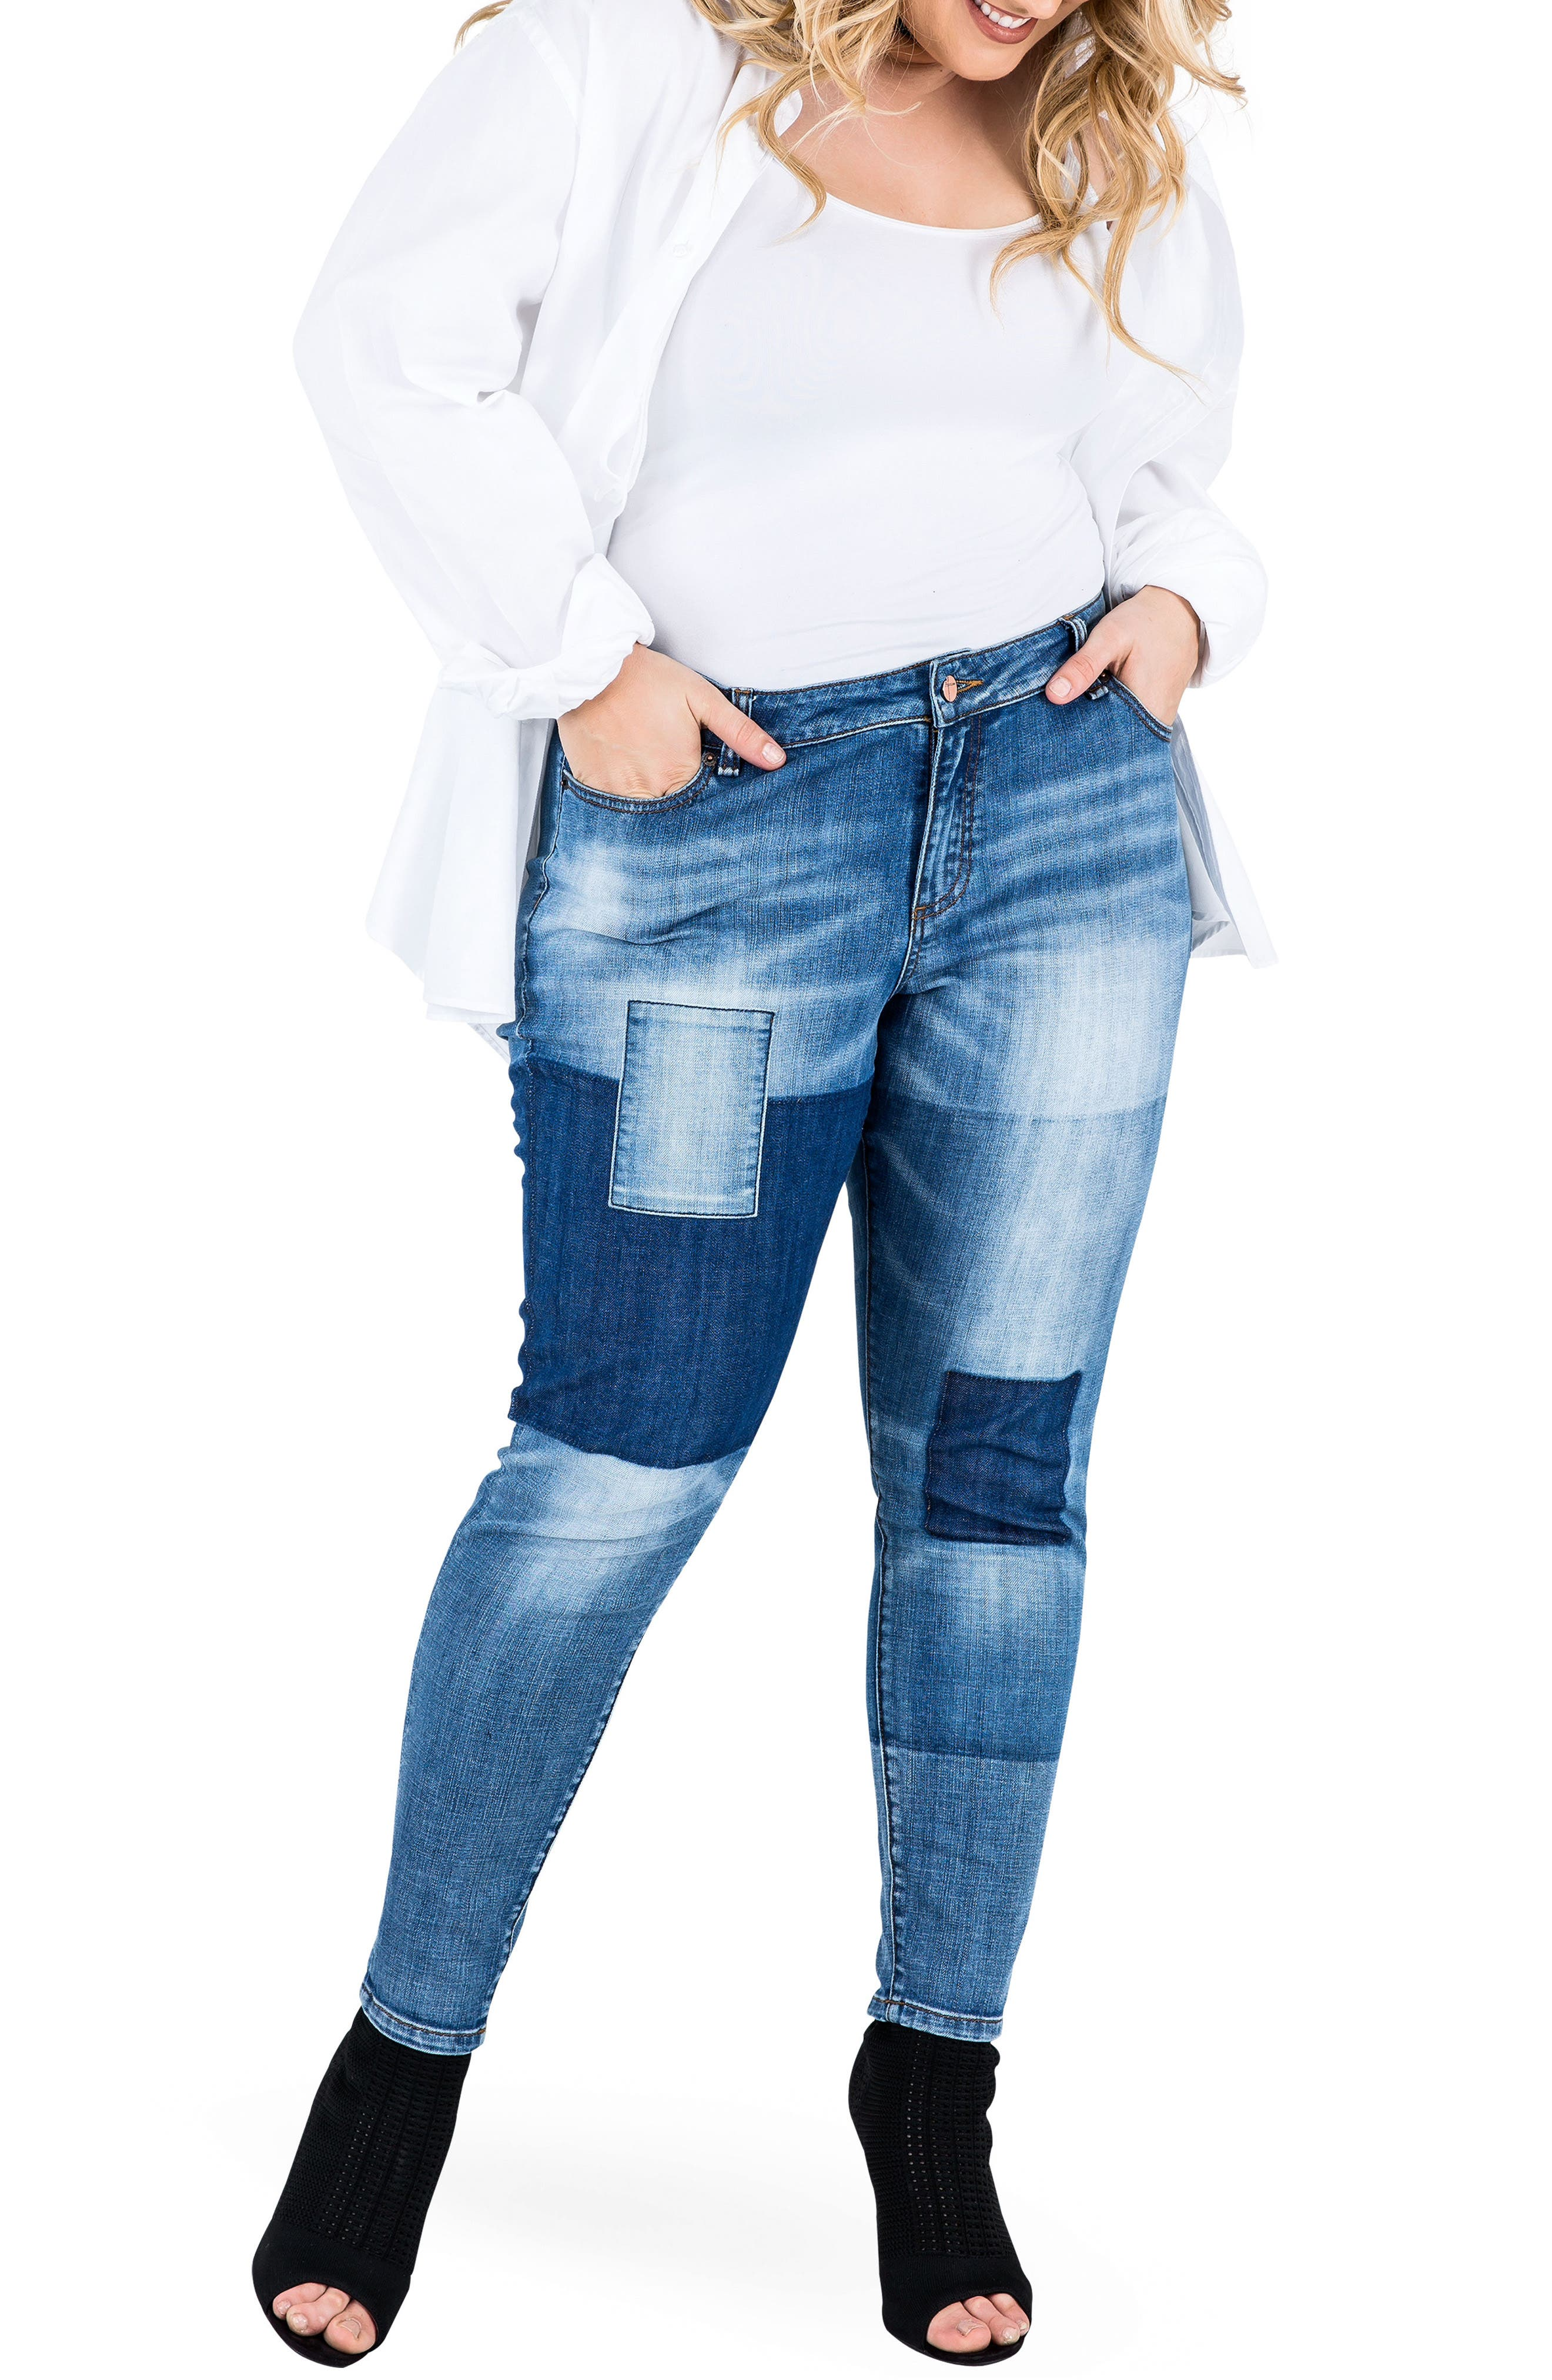 Isabel Colorblock Skinny Jeans,                             Alternate thumbnail 4, color,                             PERIWINKLE